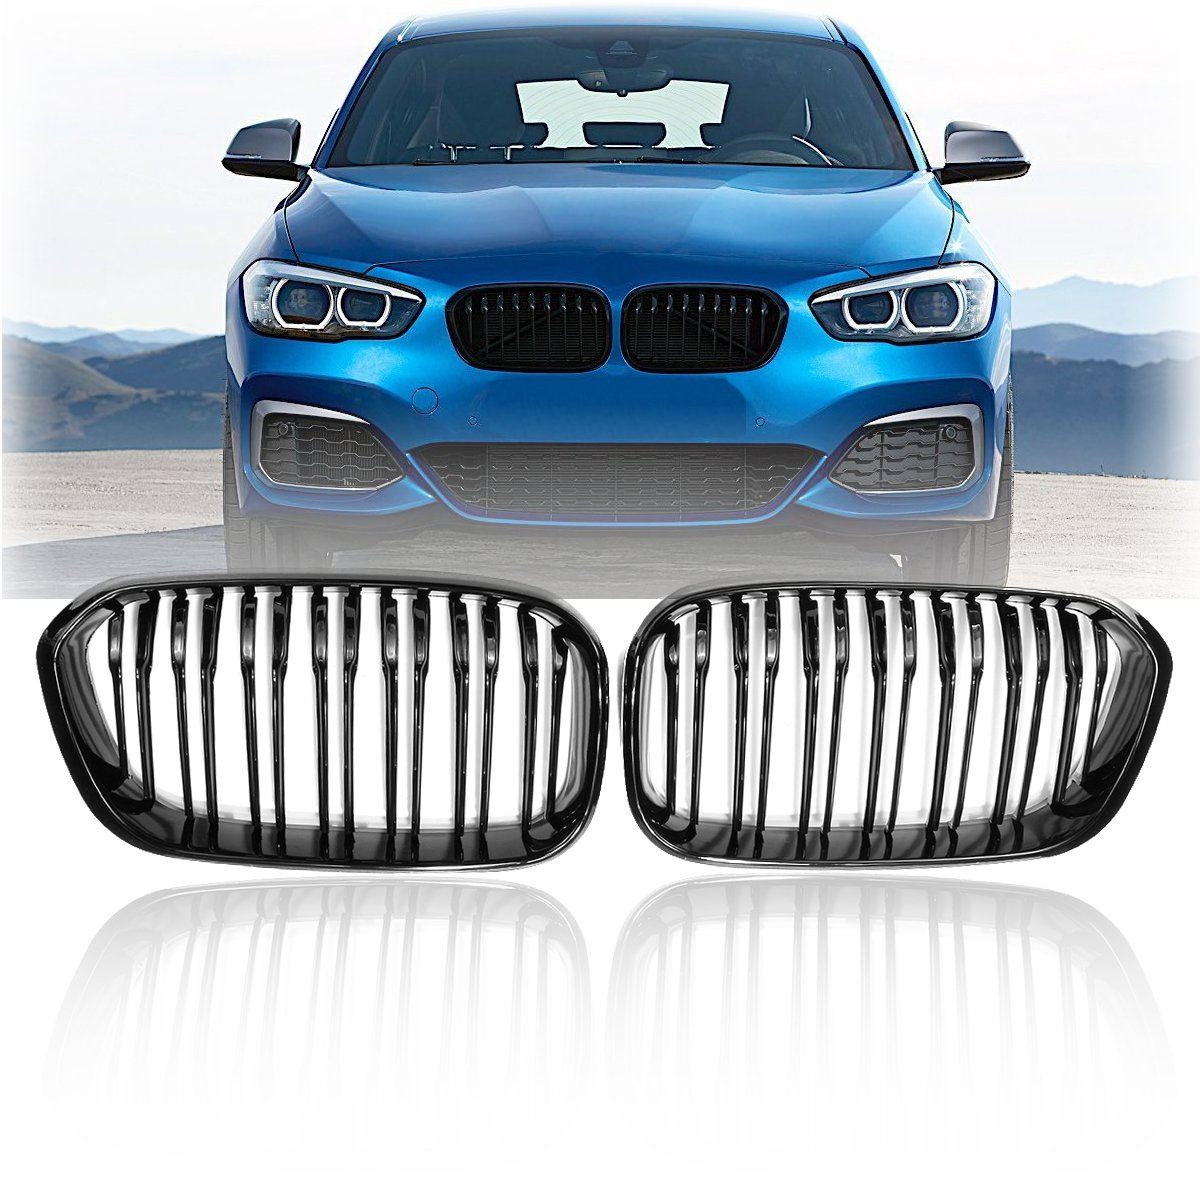 Pair Gloss Matt Black Double Slat Line M Color Front Kidney Grill Grille Car Styling Racing Grill For BMW F20 F21 1 Series 15-16 резинки bizon резинка для волос